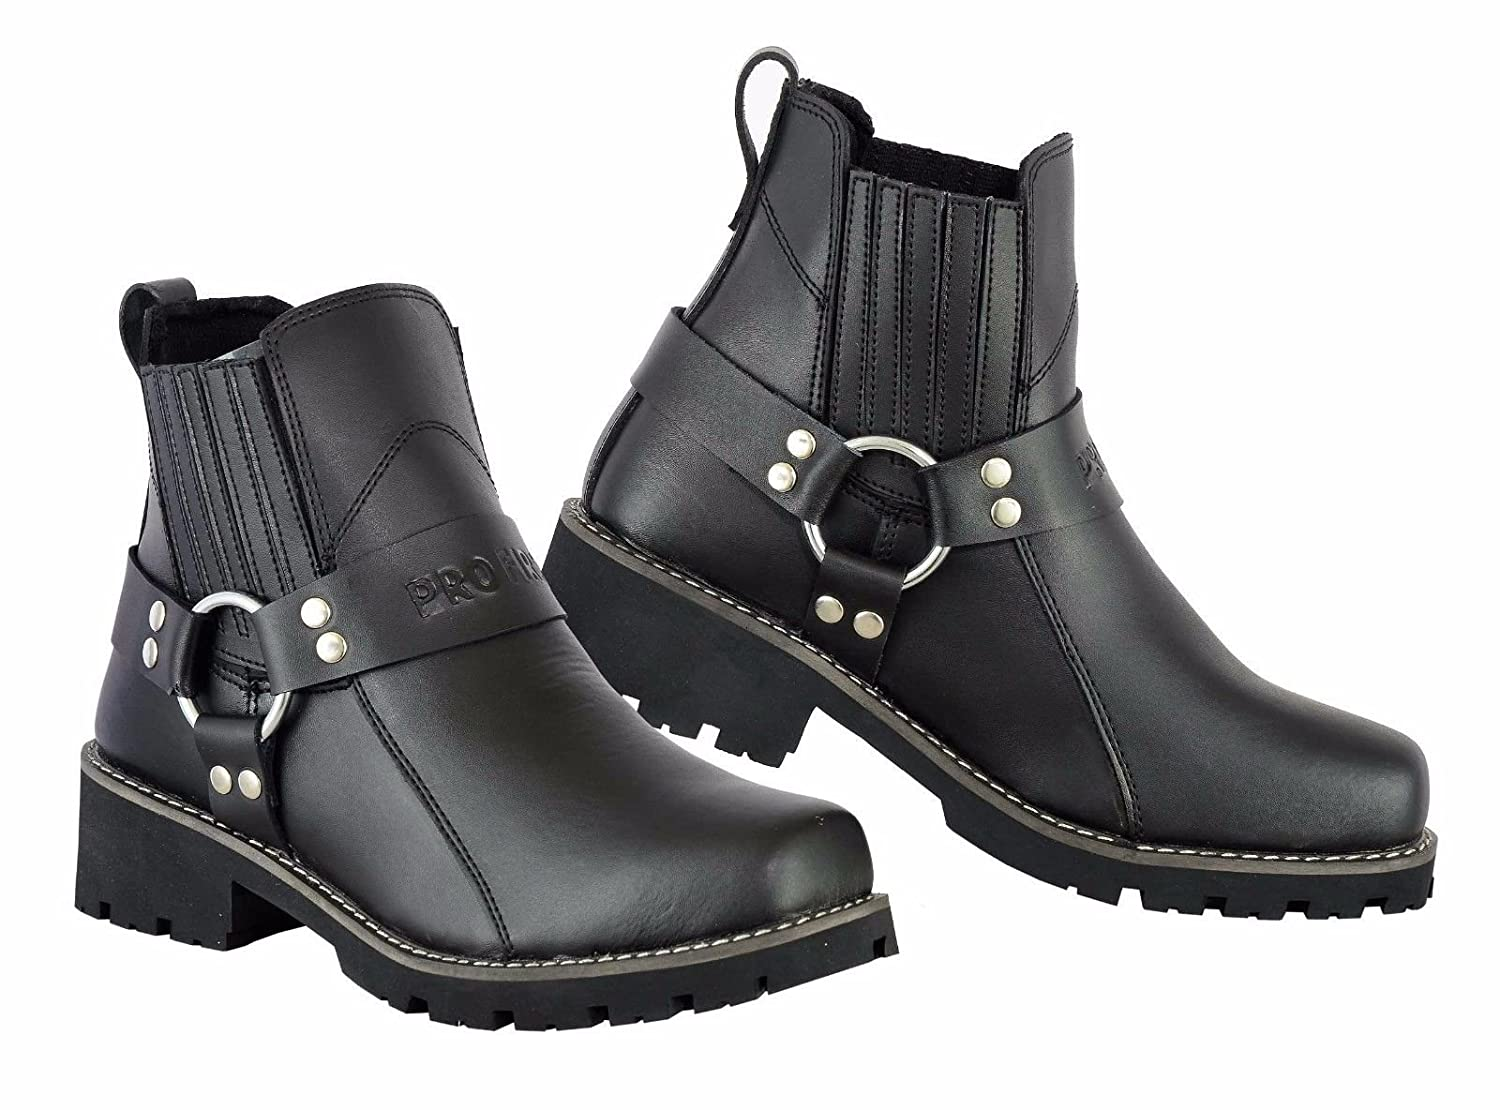 PROFIRST Pure Leather Pull on Chappar Mens Boots Motorbike Motorcycle Waterproof Touring Short Shoes UK 12 // EU 46 Zip Full Black Lace /& Strap Free ? Comfort Guaranteed